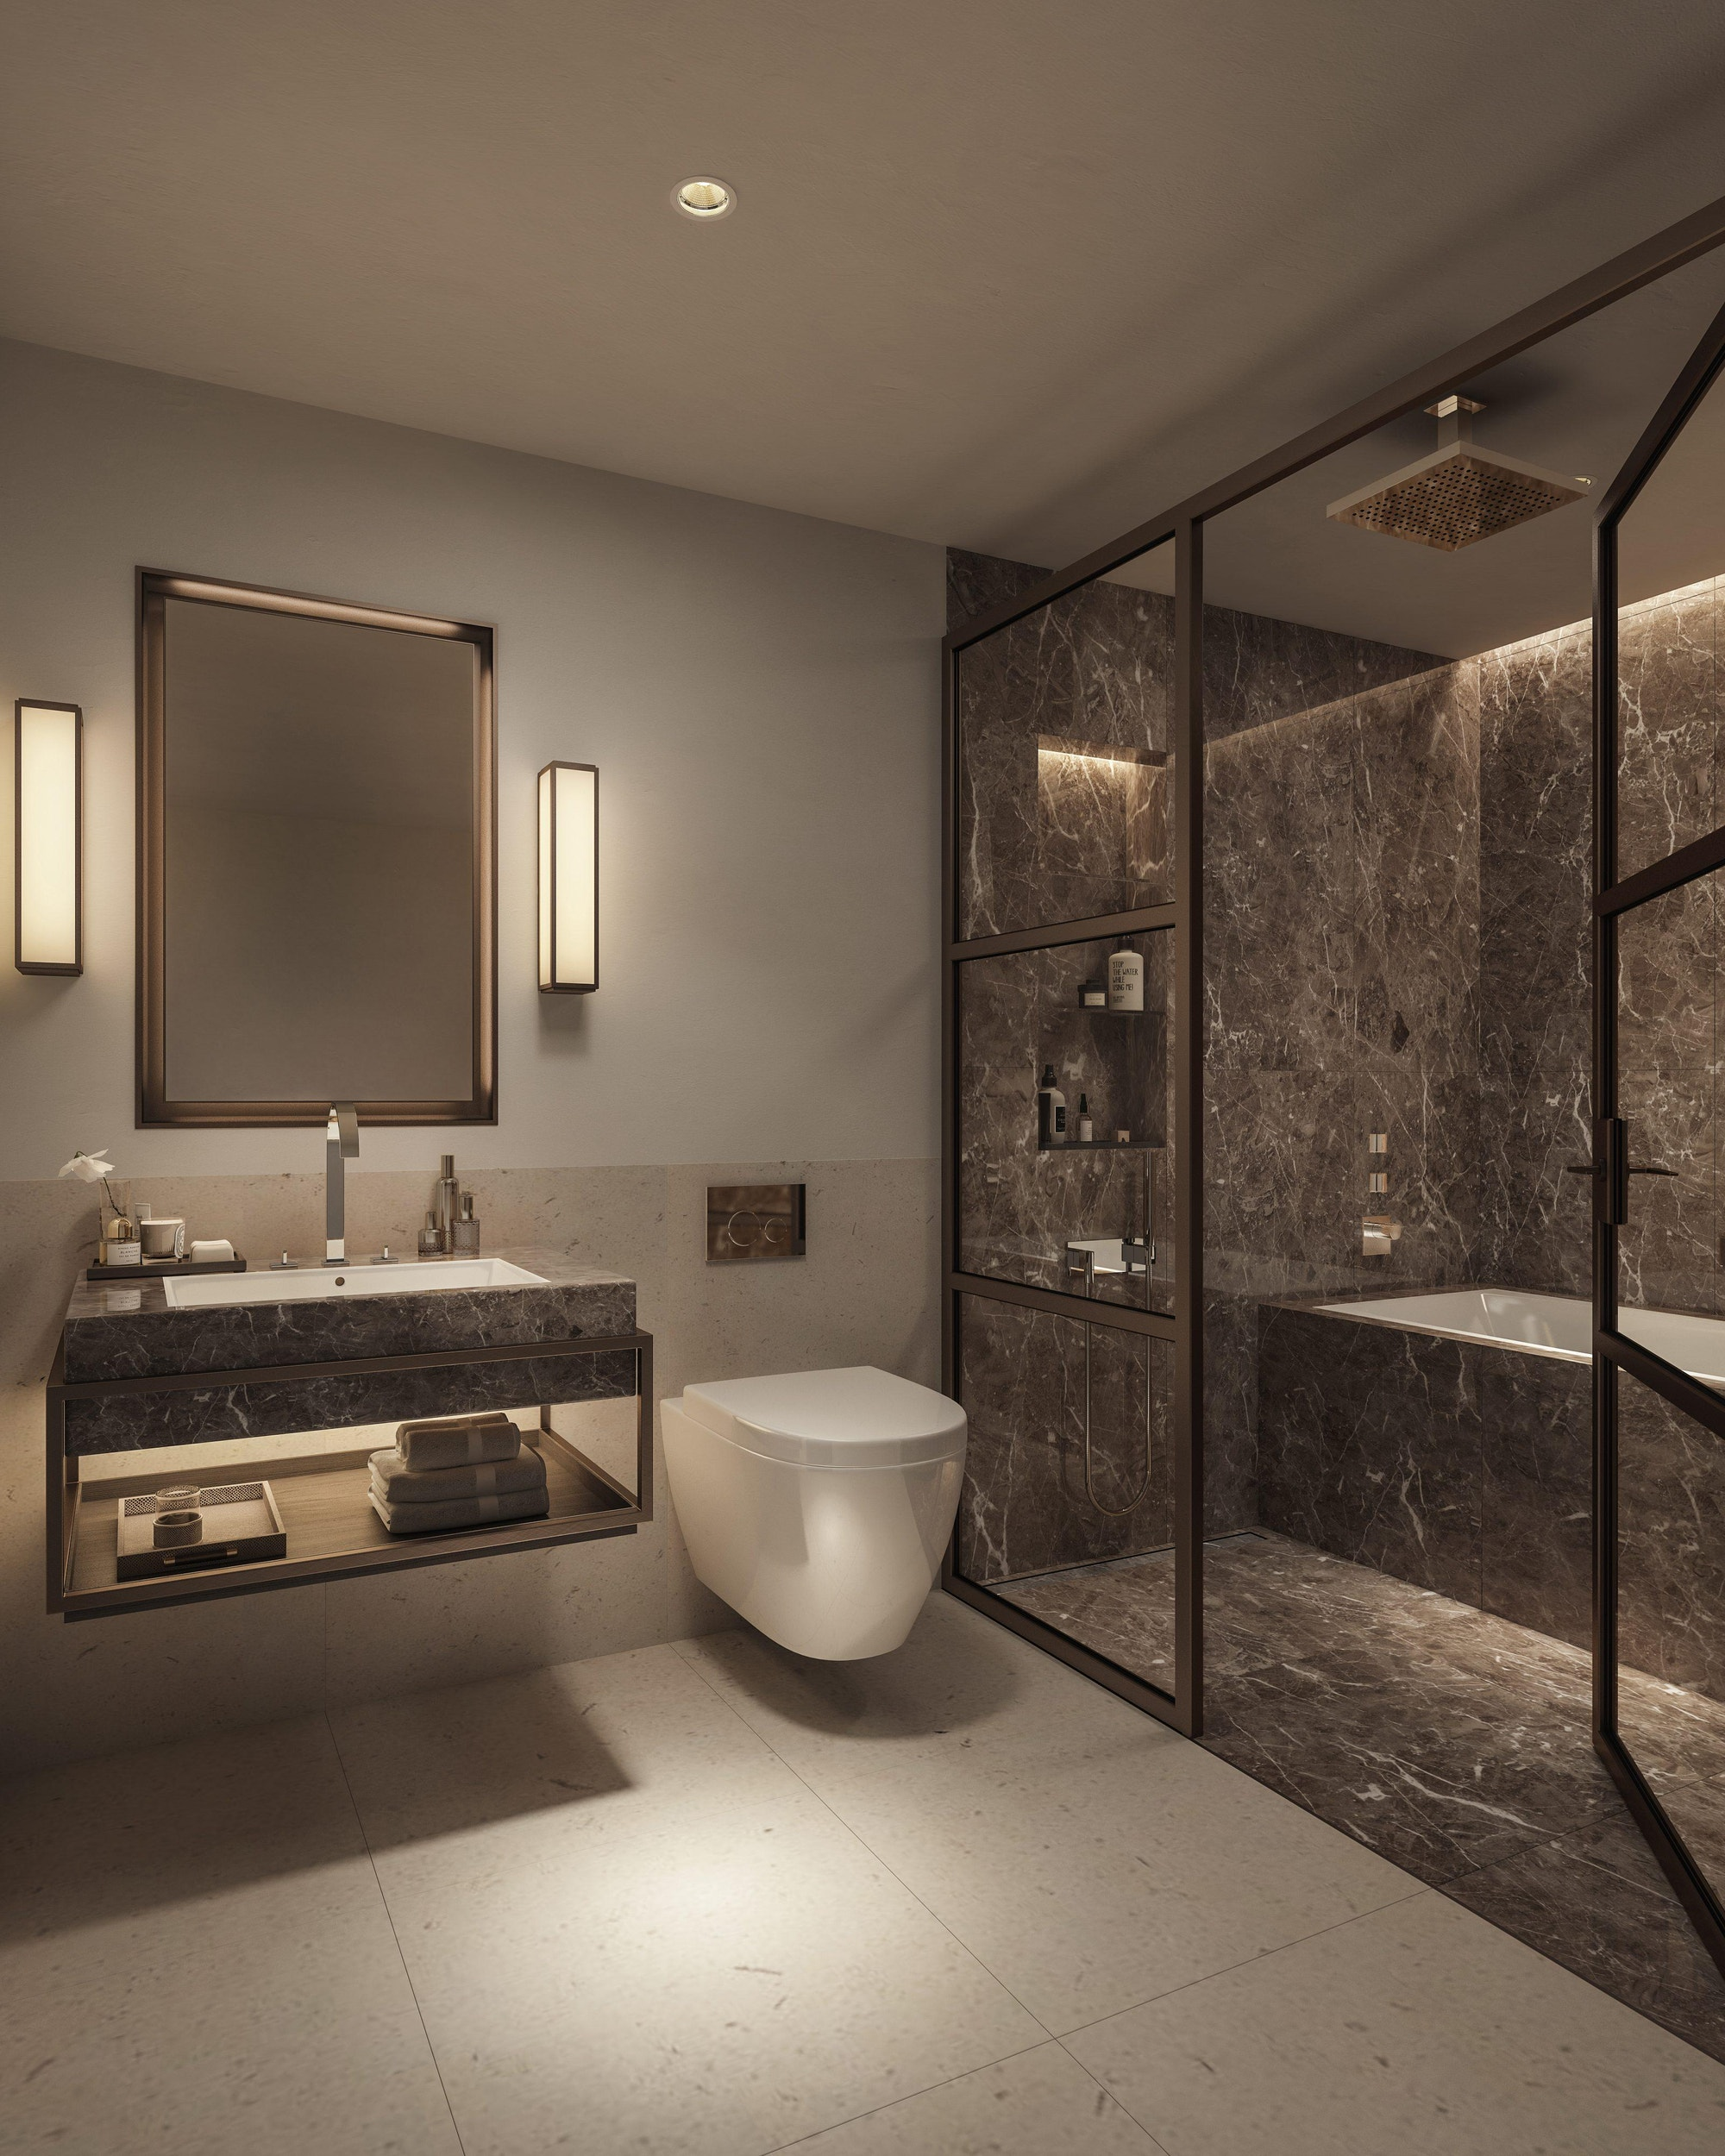 MAWD-Golden-Square-London-luxury-interior-shower